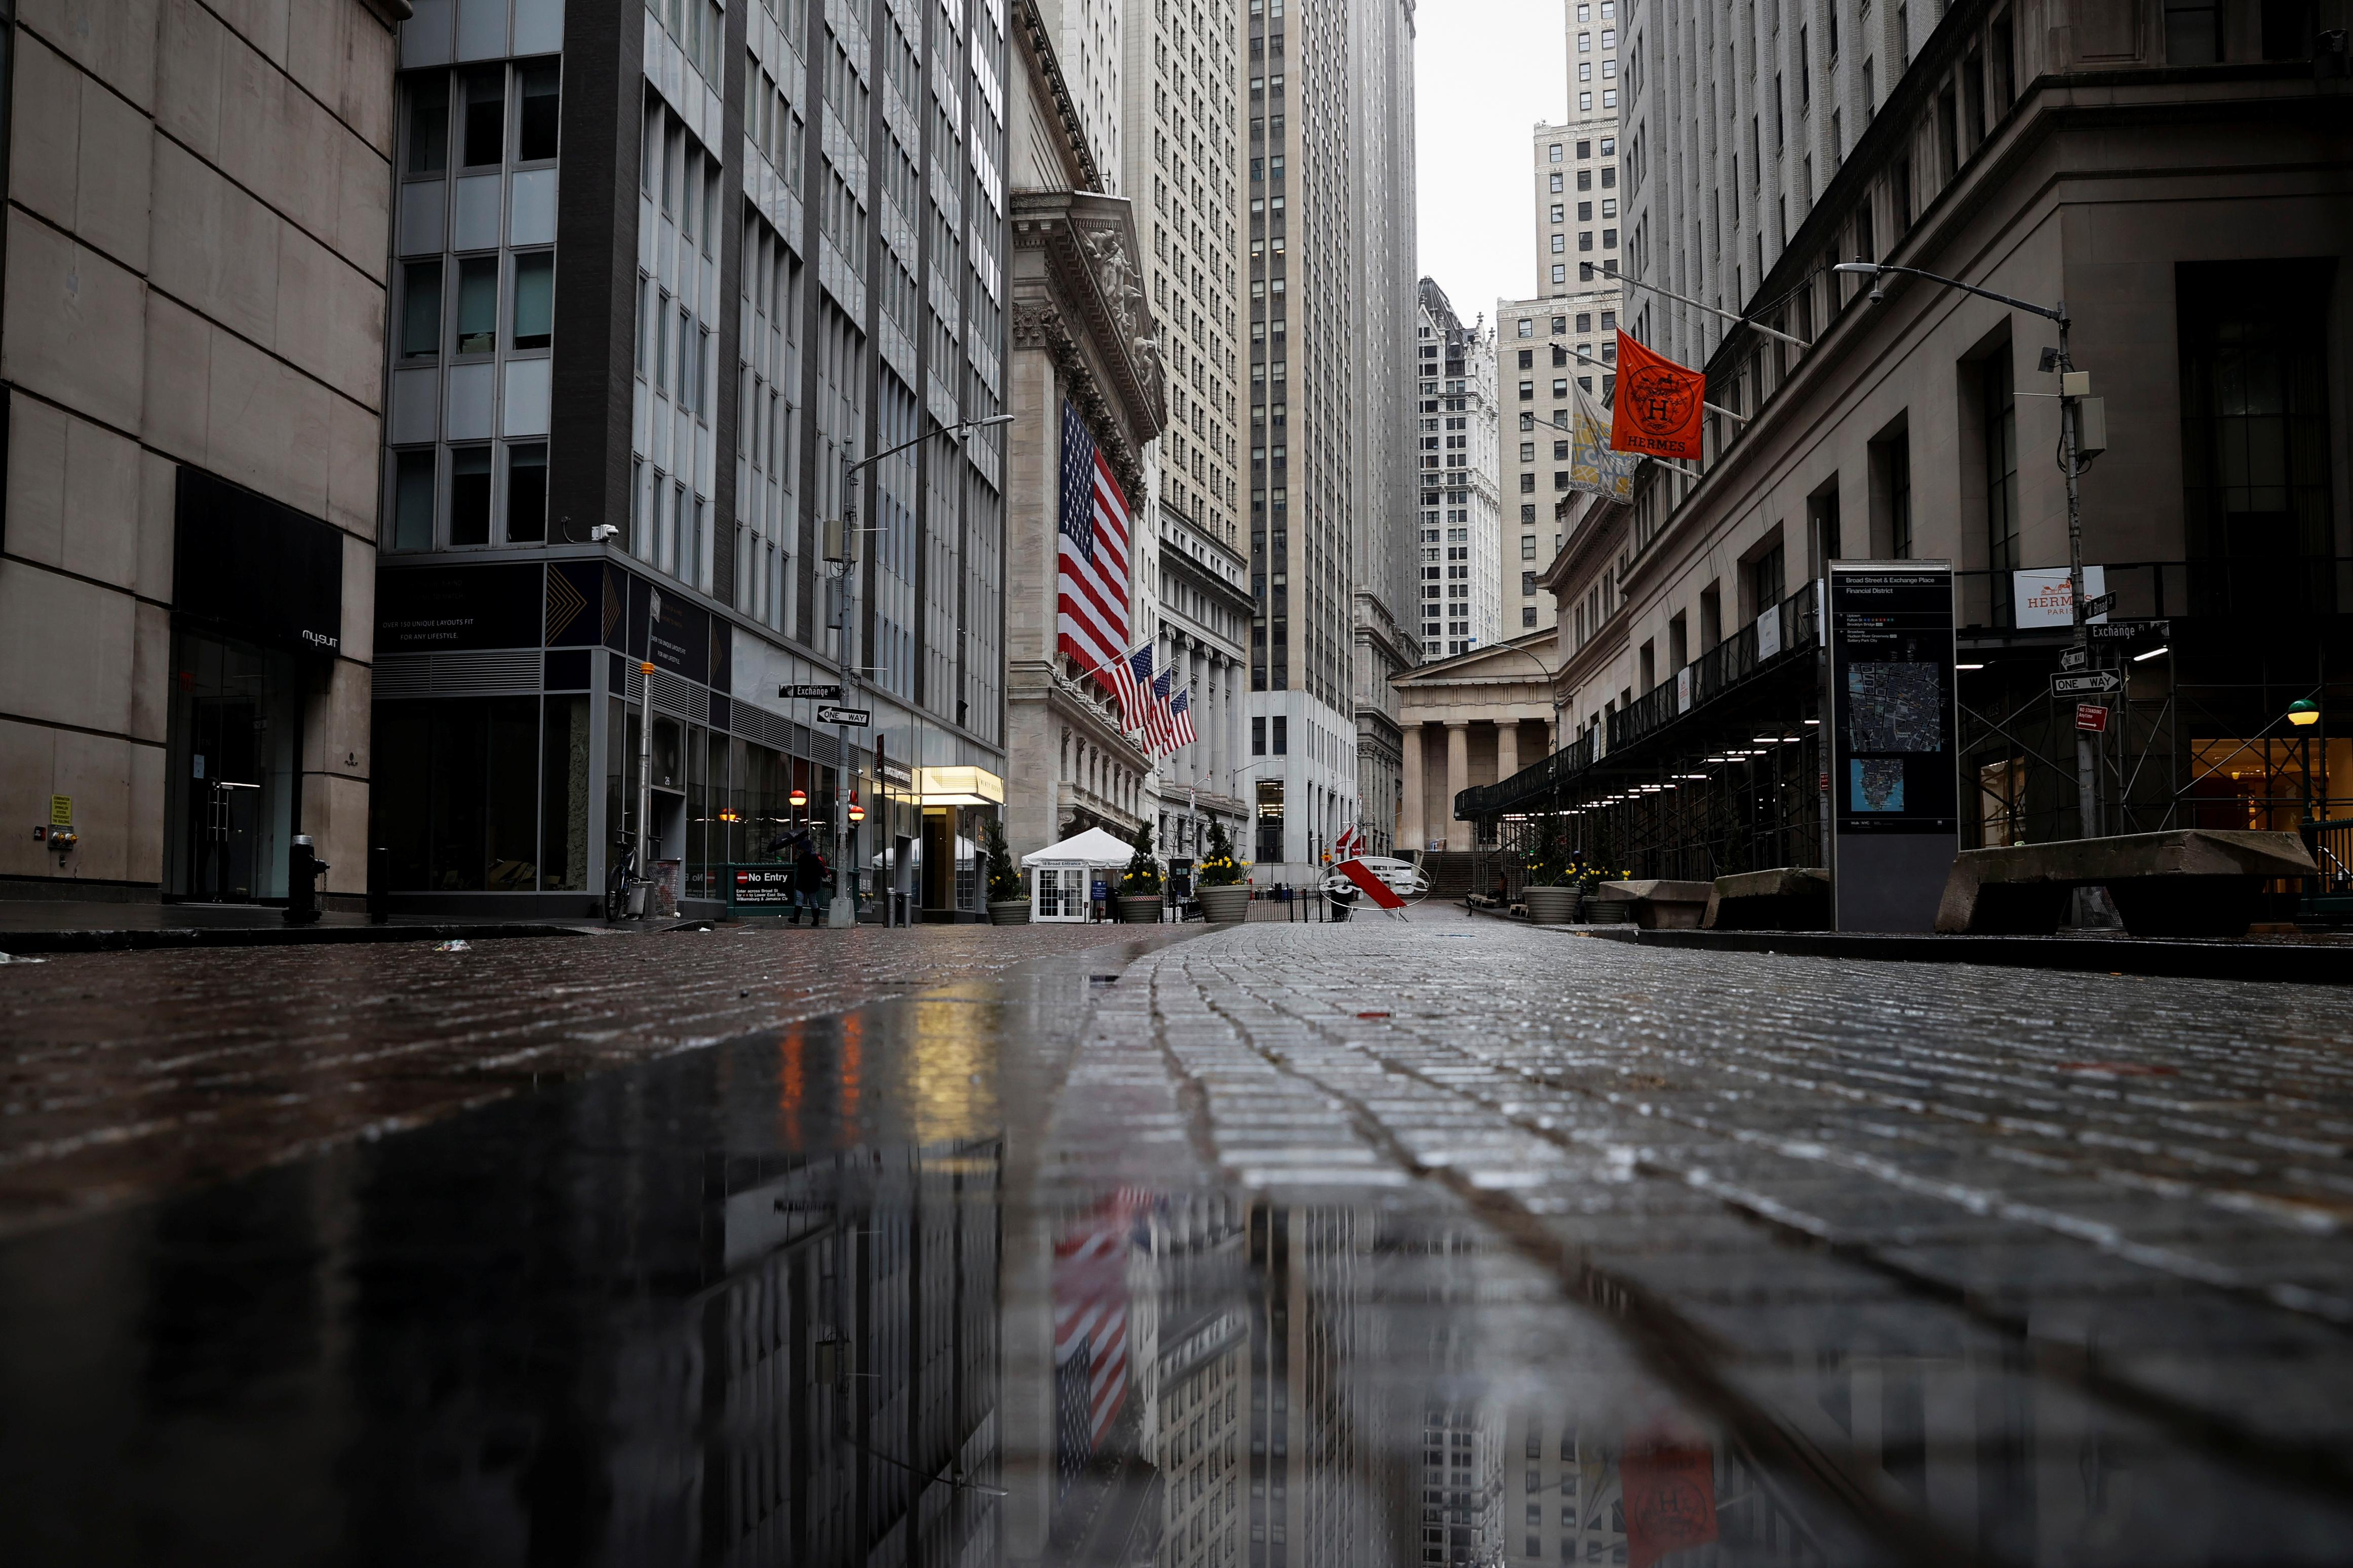 Stock futures jump amid COVID-19 treatment optimism, economic reopening discussions